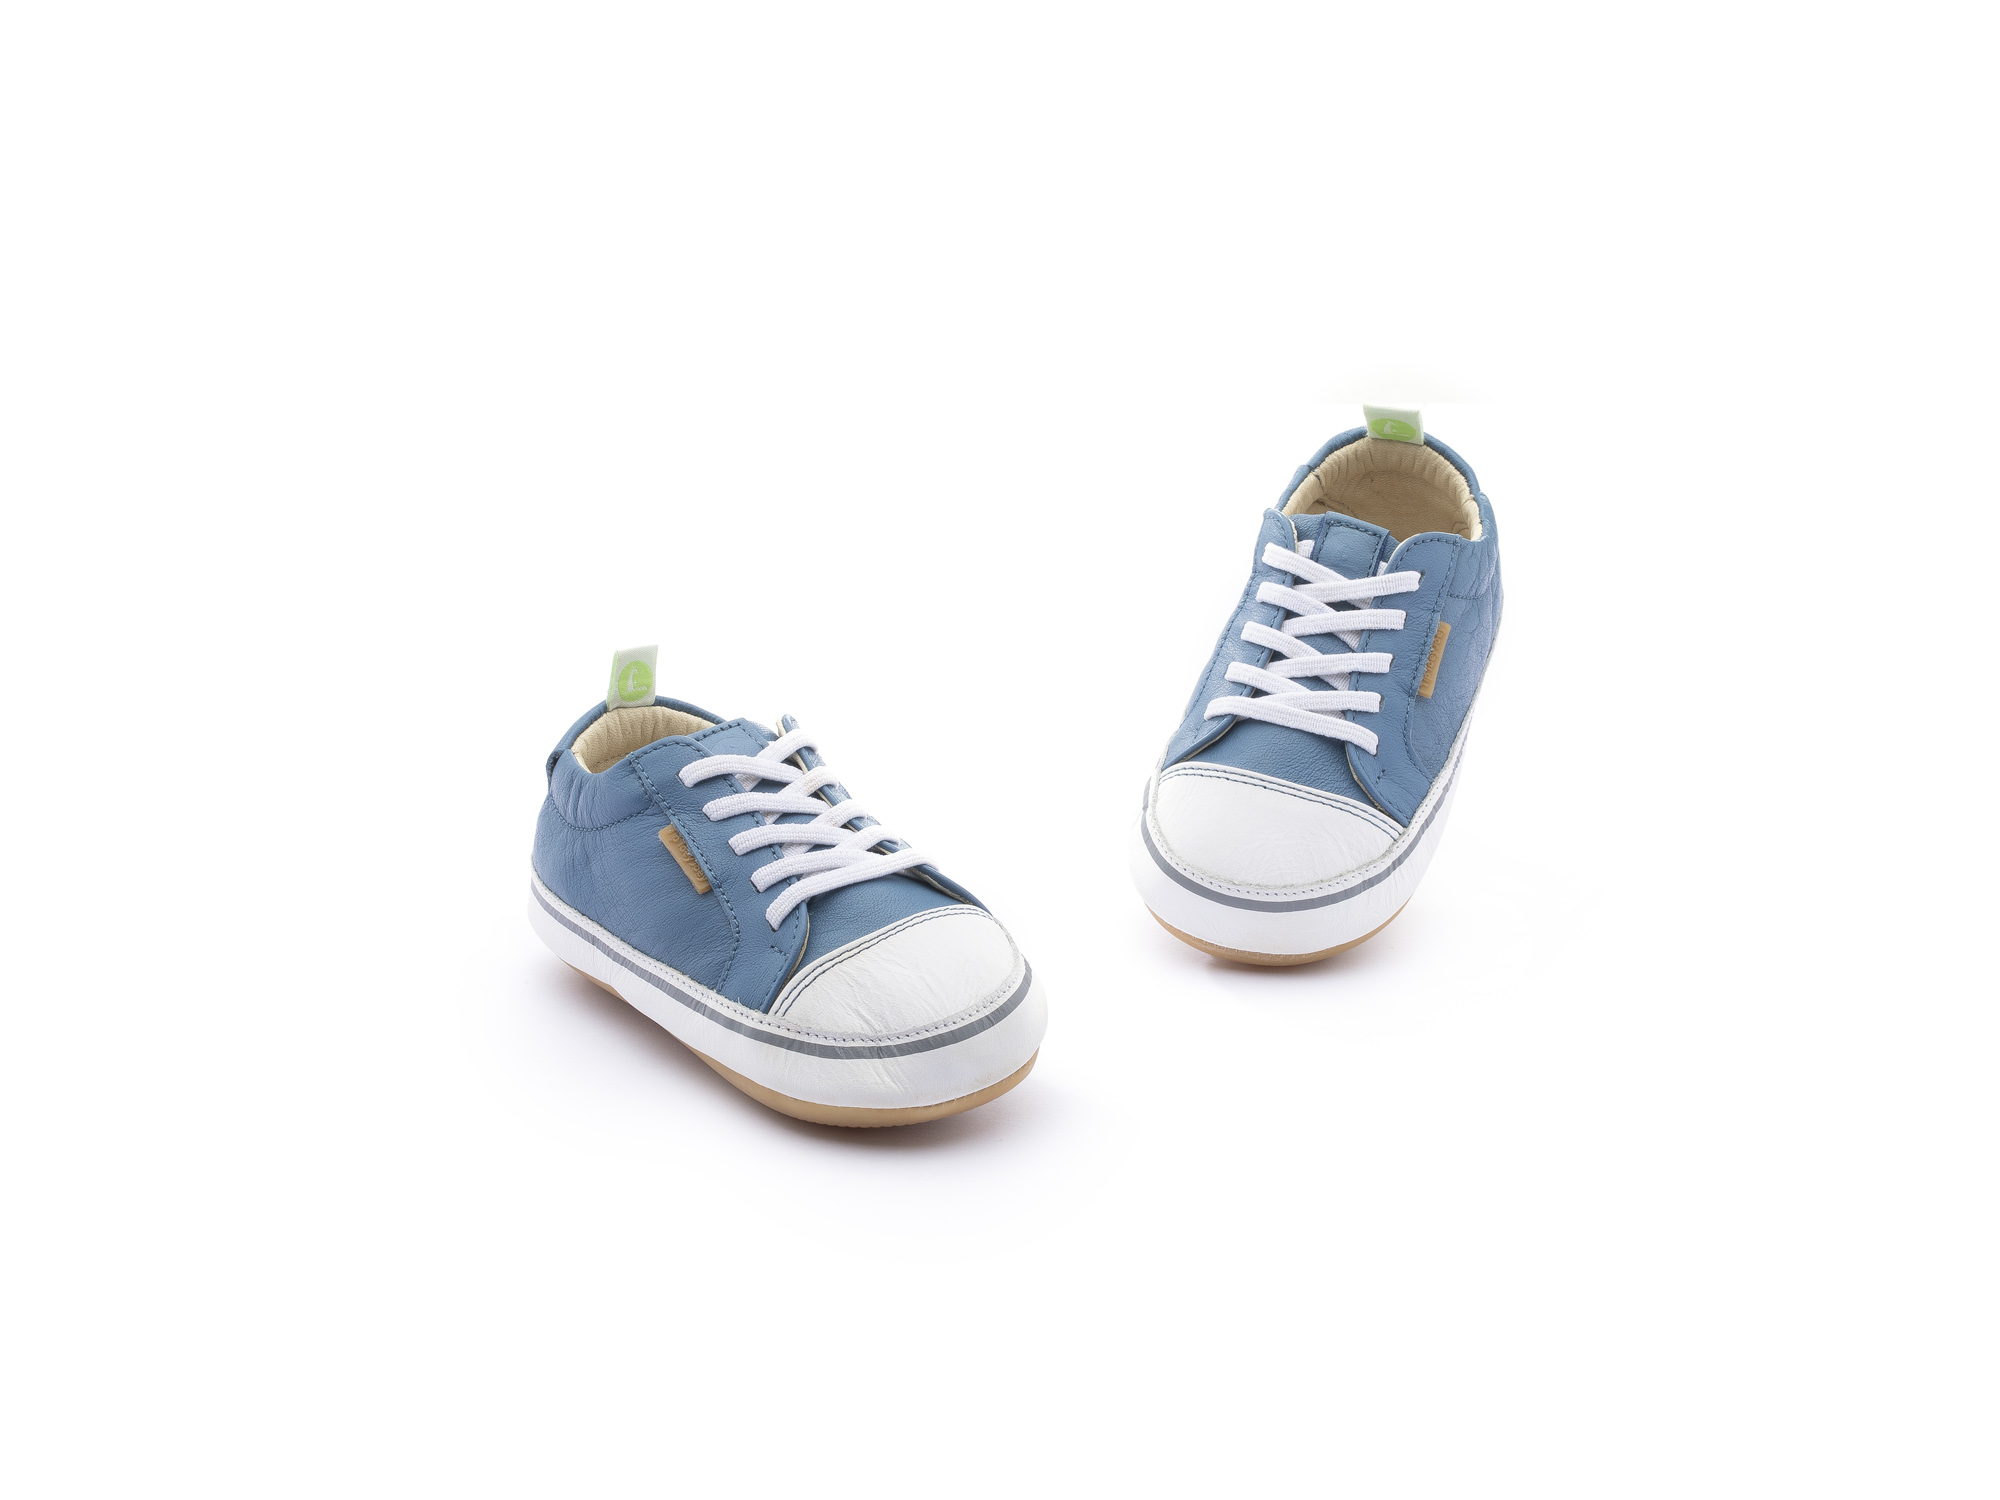 Sneaker Casual Funky Denim/ White Baby 0 à 2 anos - 3